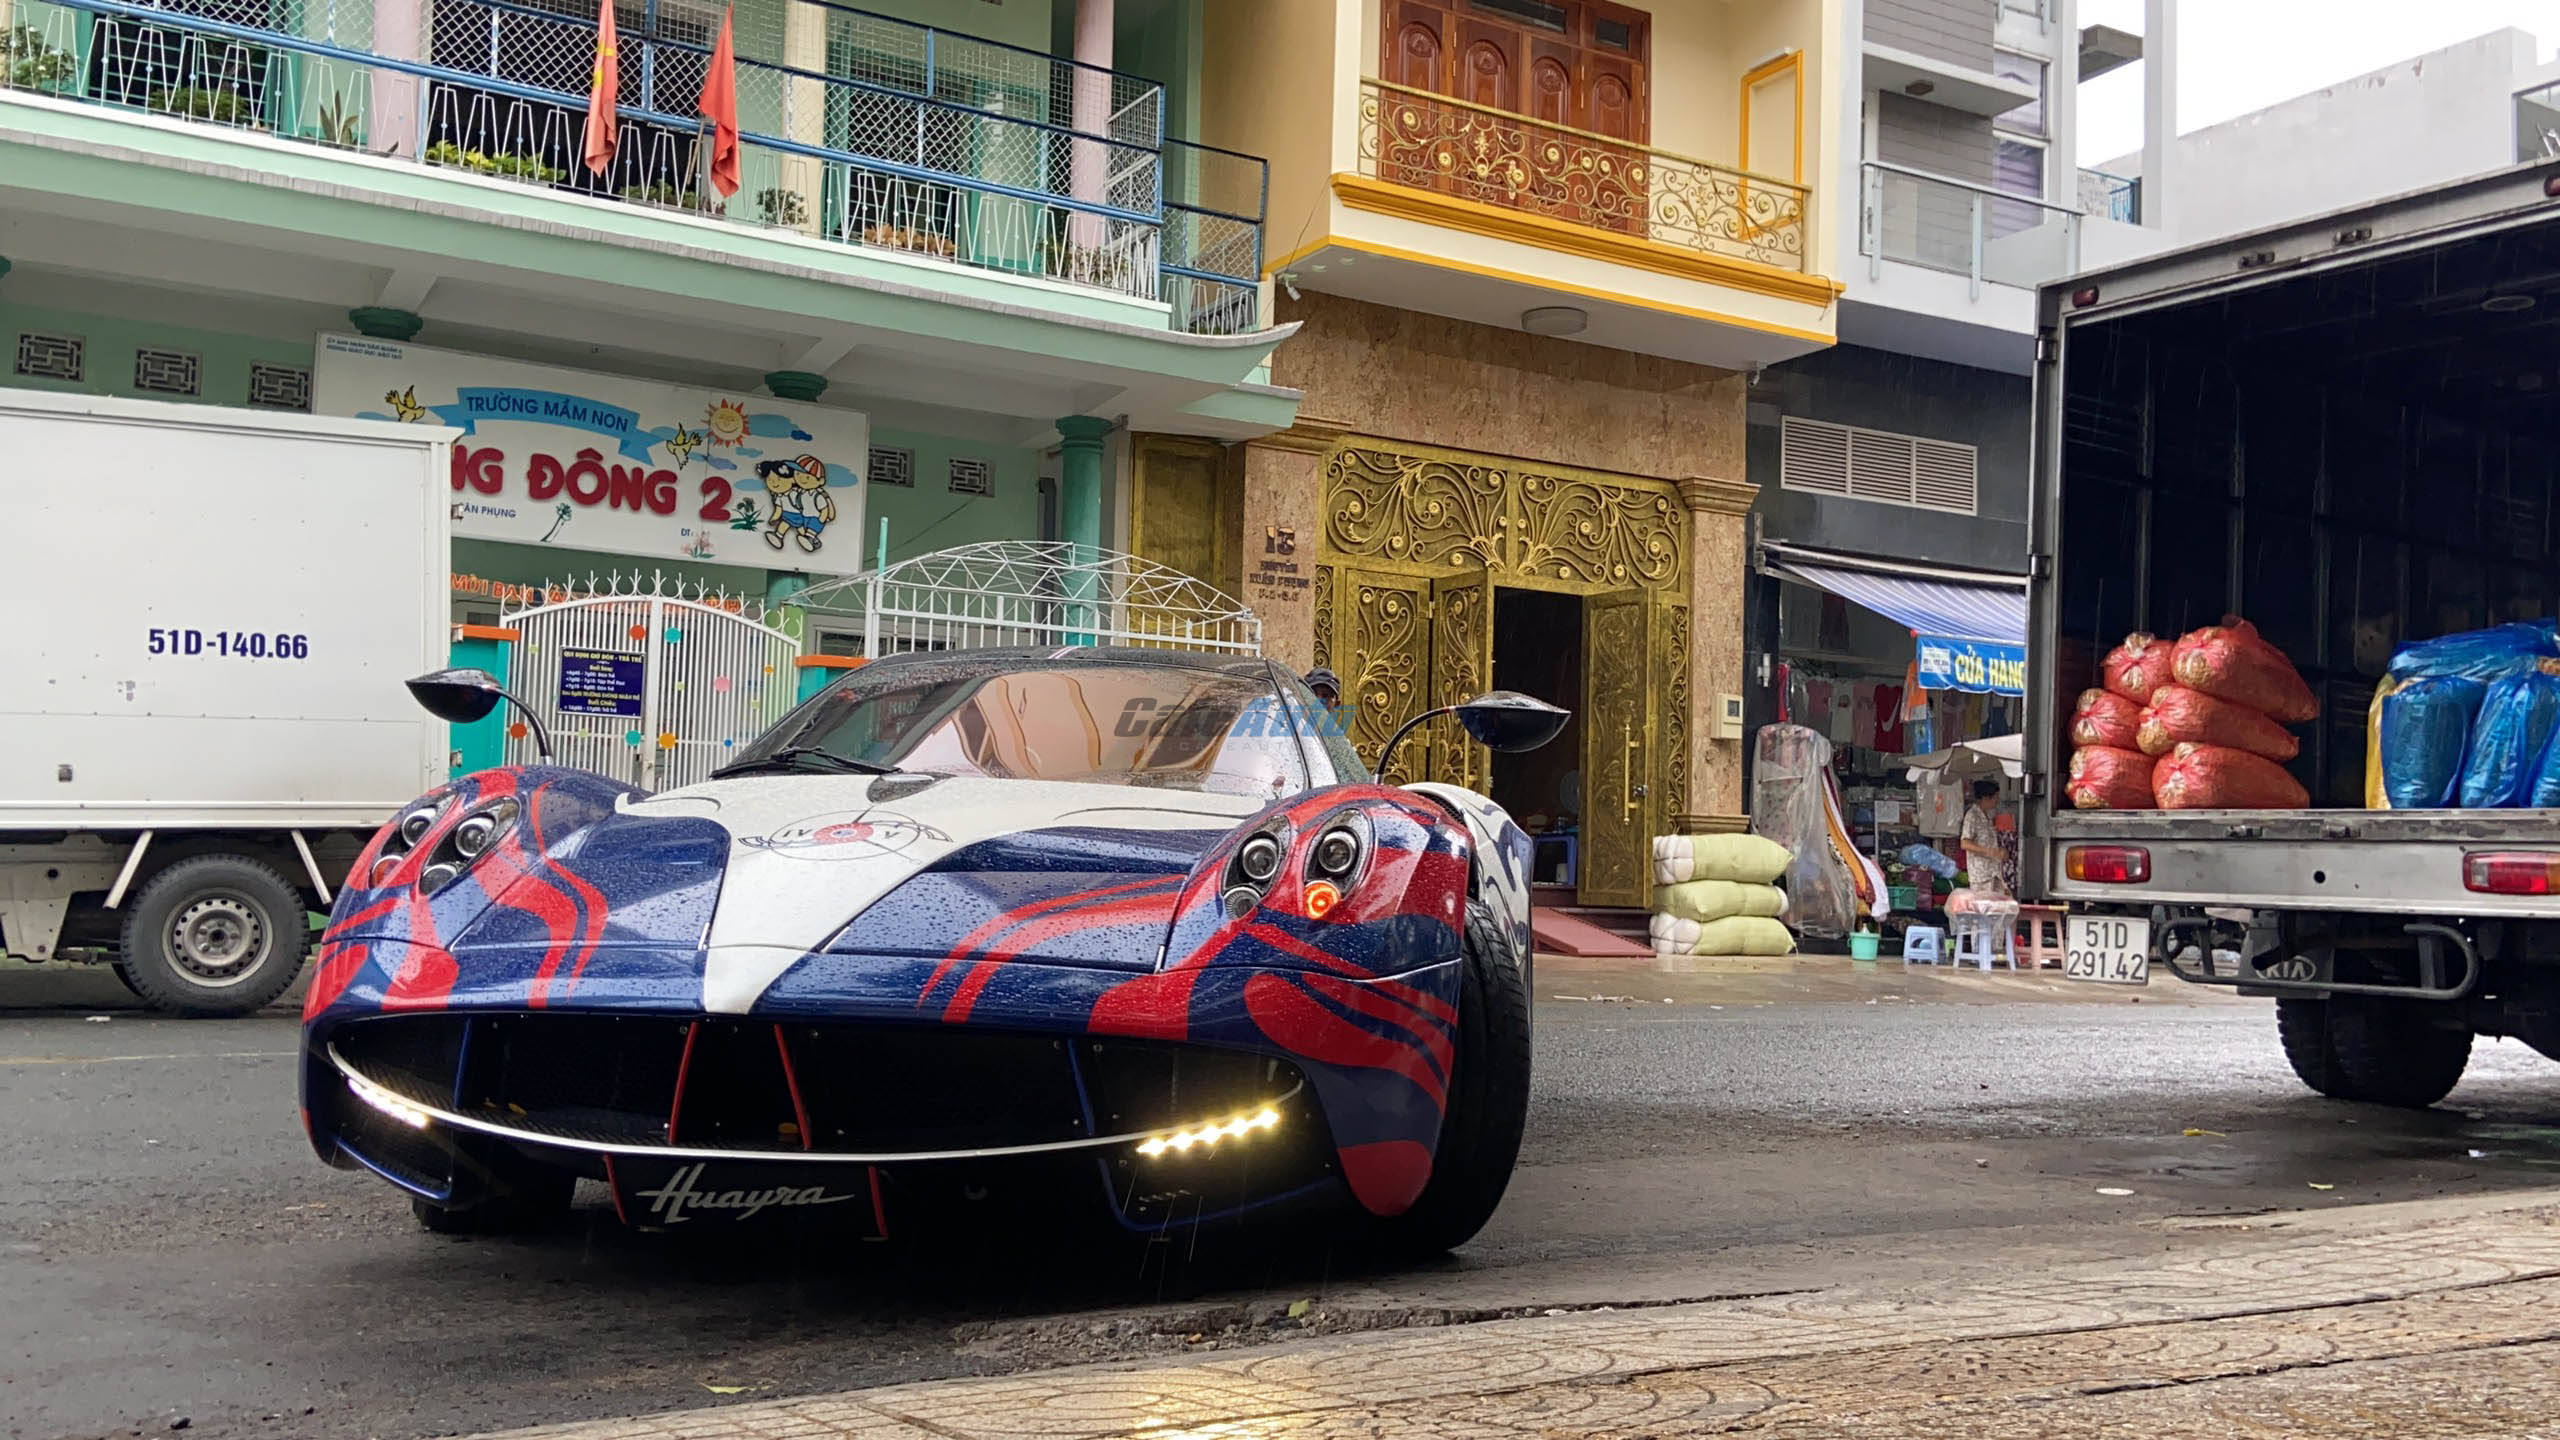 paganihuayra-cafeautovn-25